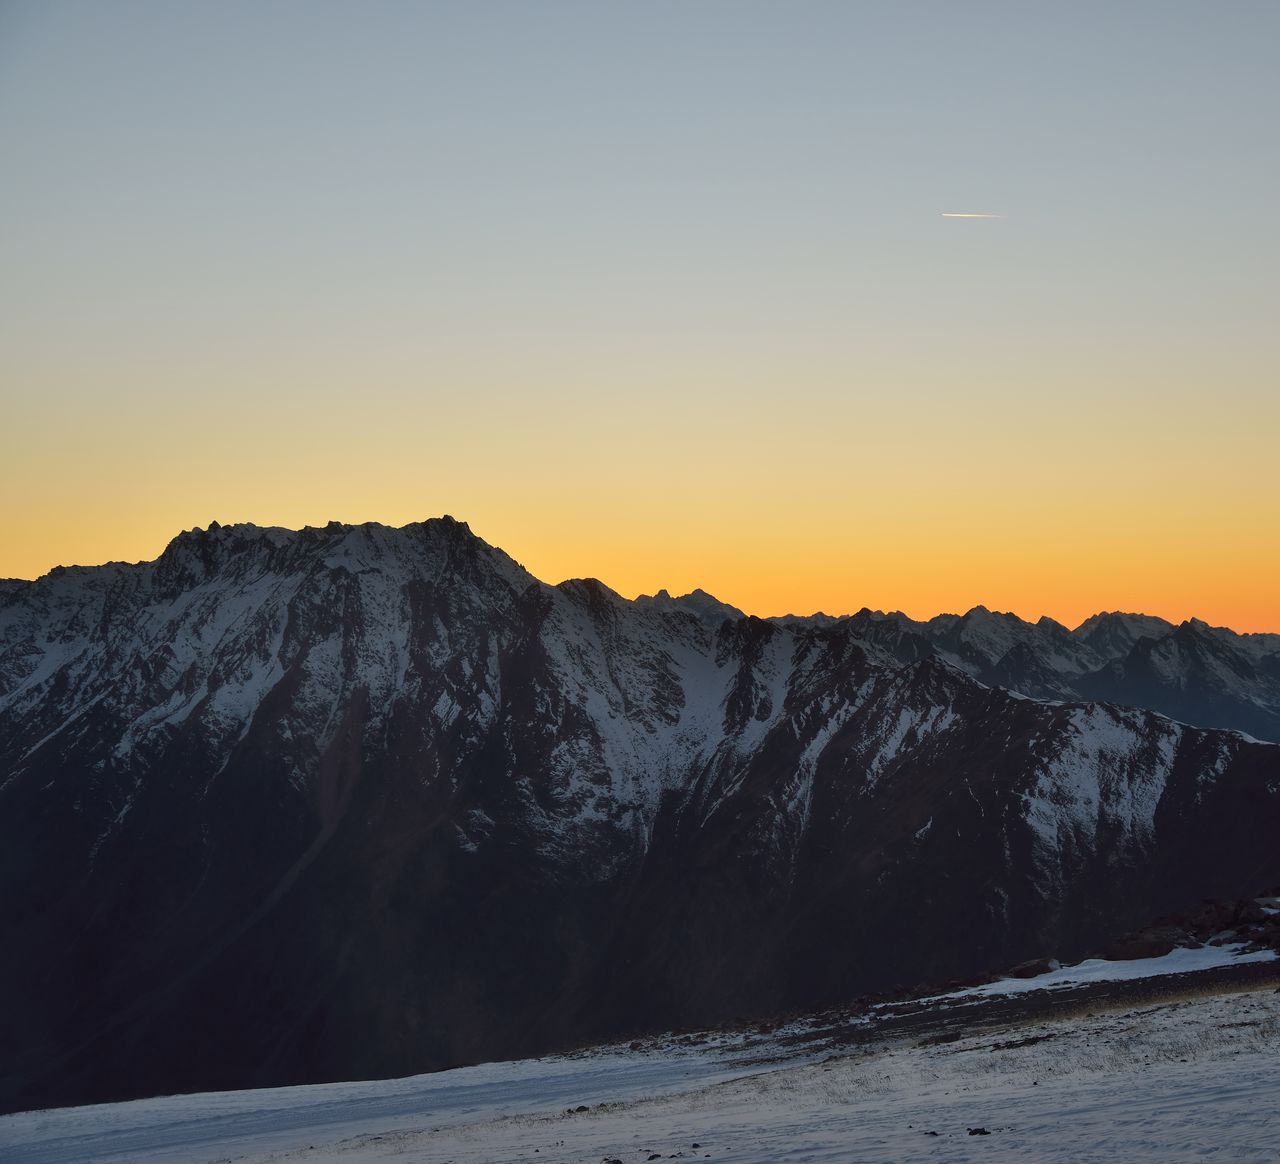 sunset, beauty in nature, sky, scenics - nature, mountain, tranquility, tranquil scene, clear sky, cold temperature, winter, nature, snow, no people, non-urban scene, copy space, idyllic, mountain range, environment, landscape, outdoors, snowcapped mountain, mountain peak